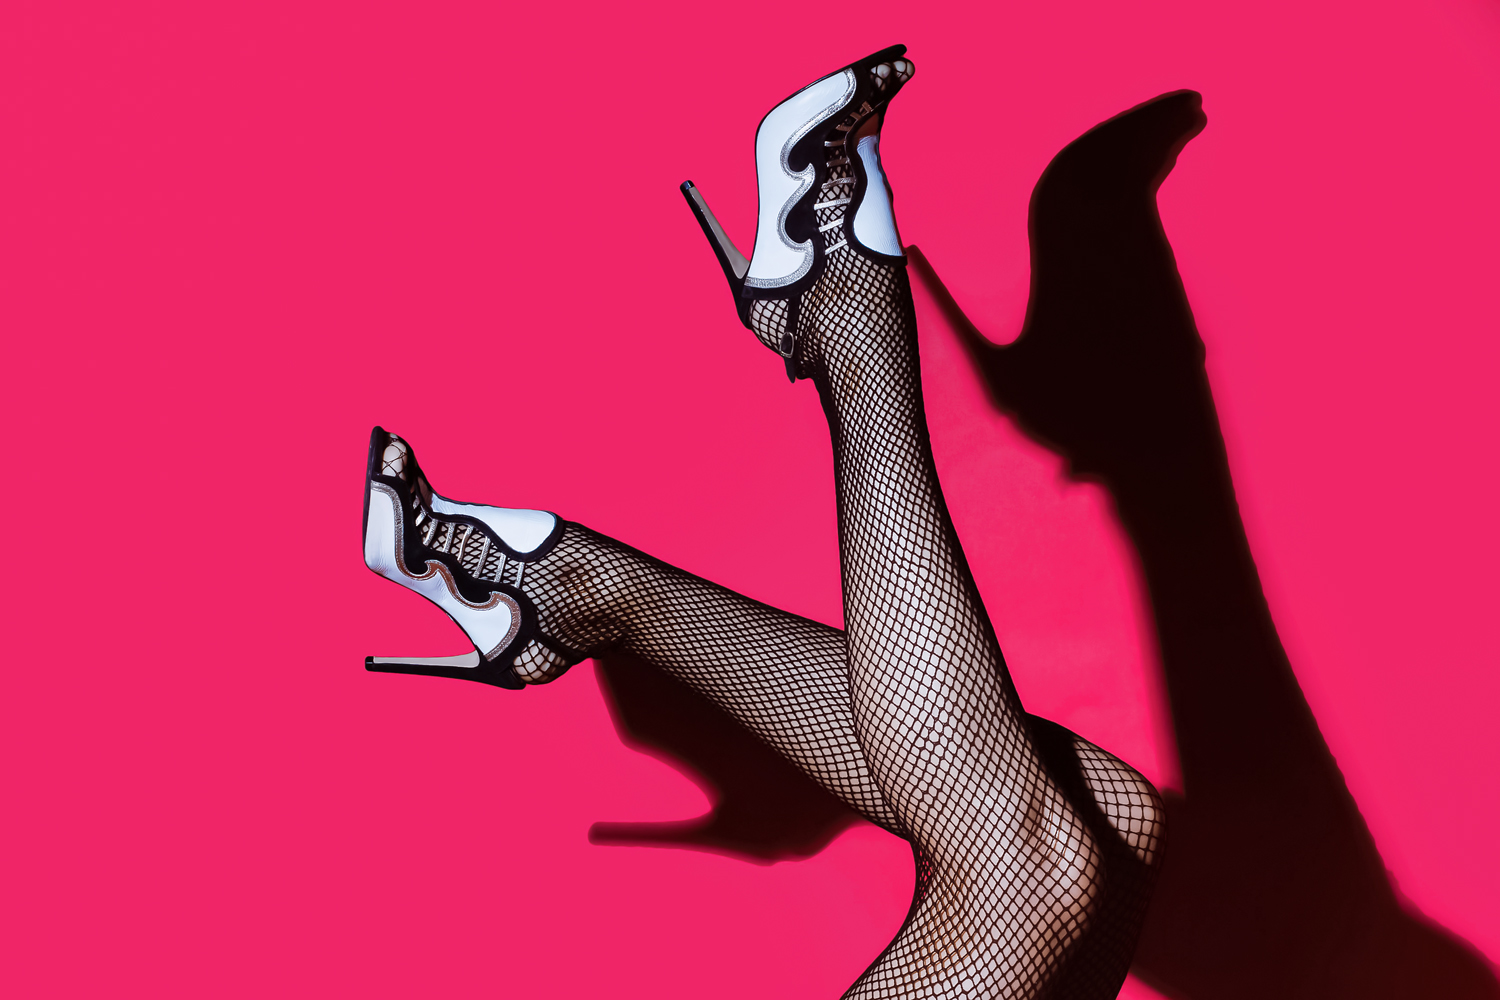 a close up picture of legs wearing fishnet pantyhose and heels